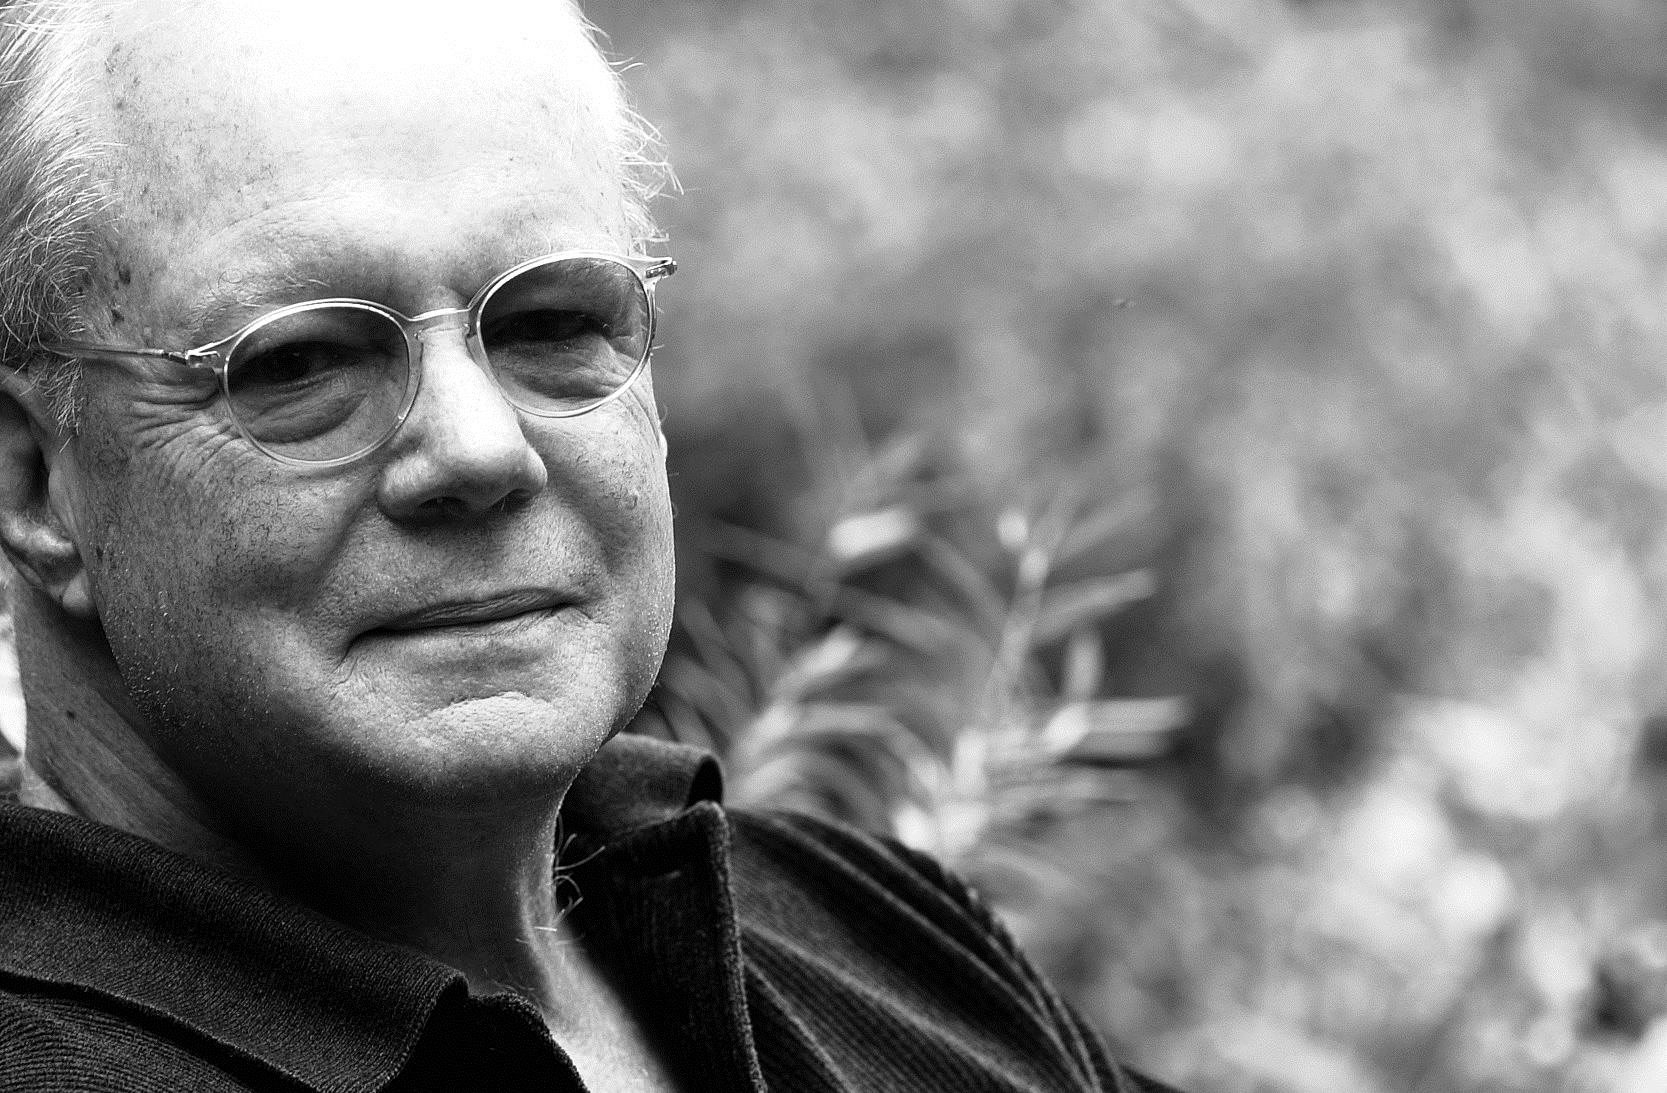 M. Scott Peck blended religious and psychological probity in his noted book.